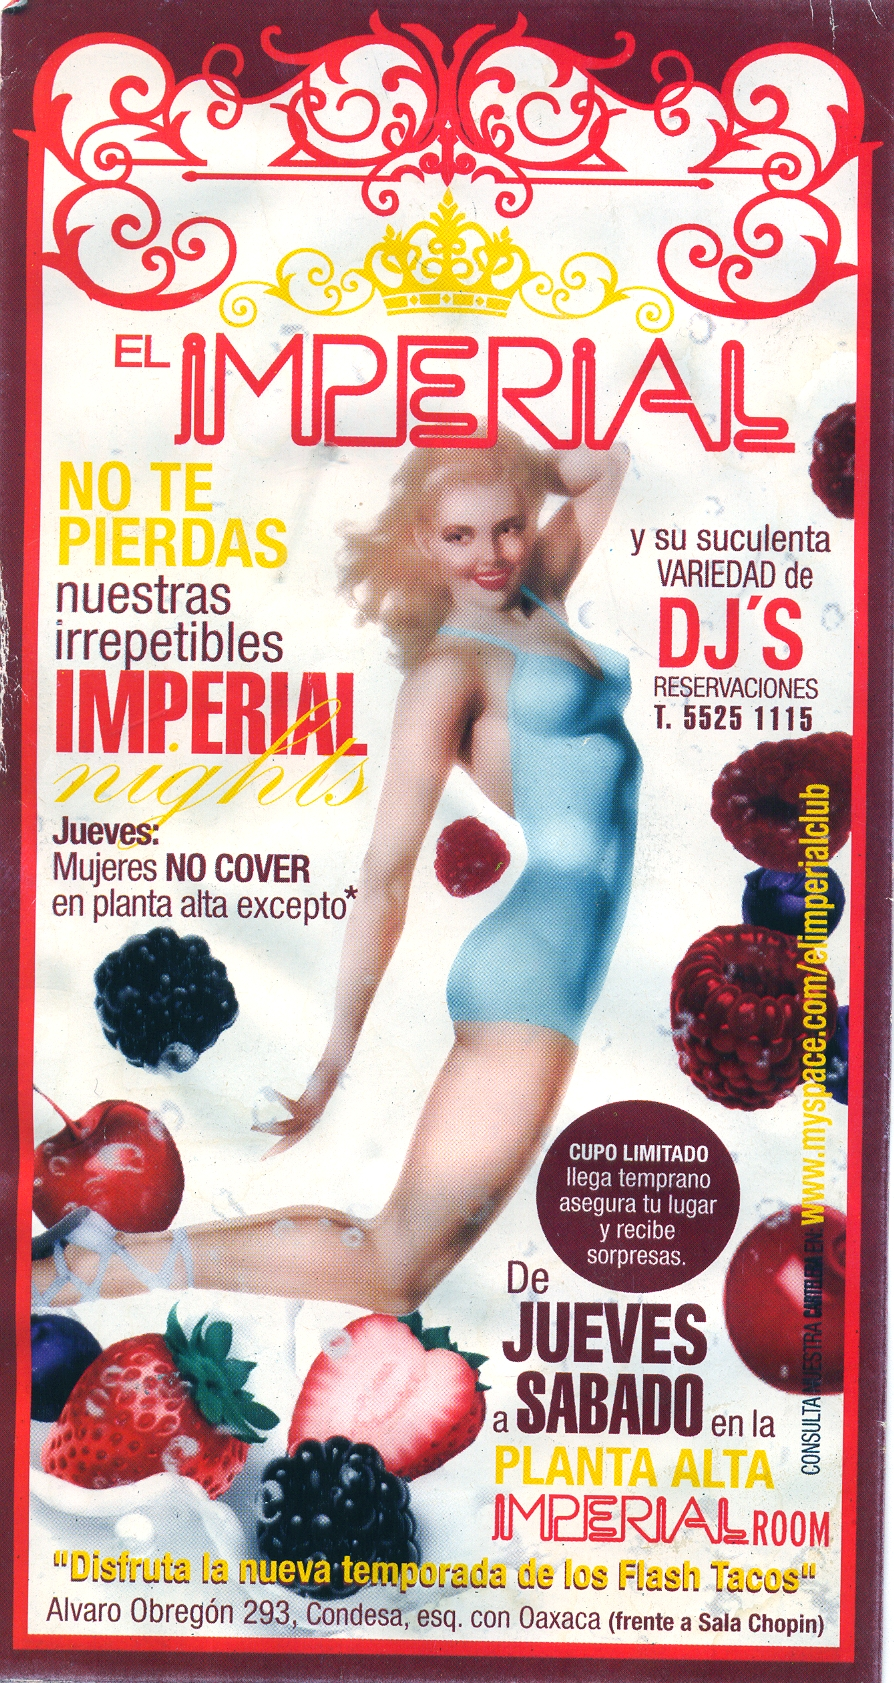 abril 2009 imperial